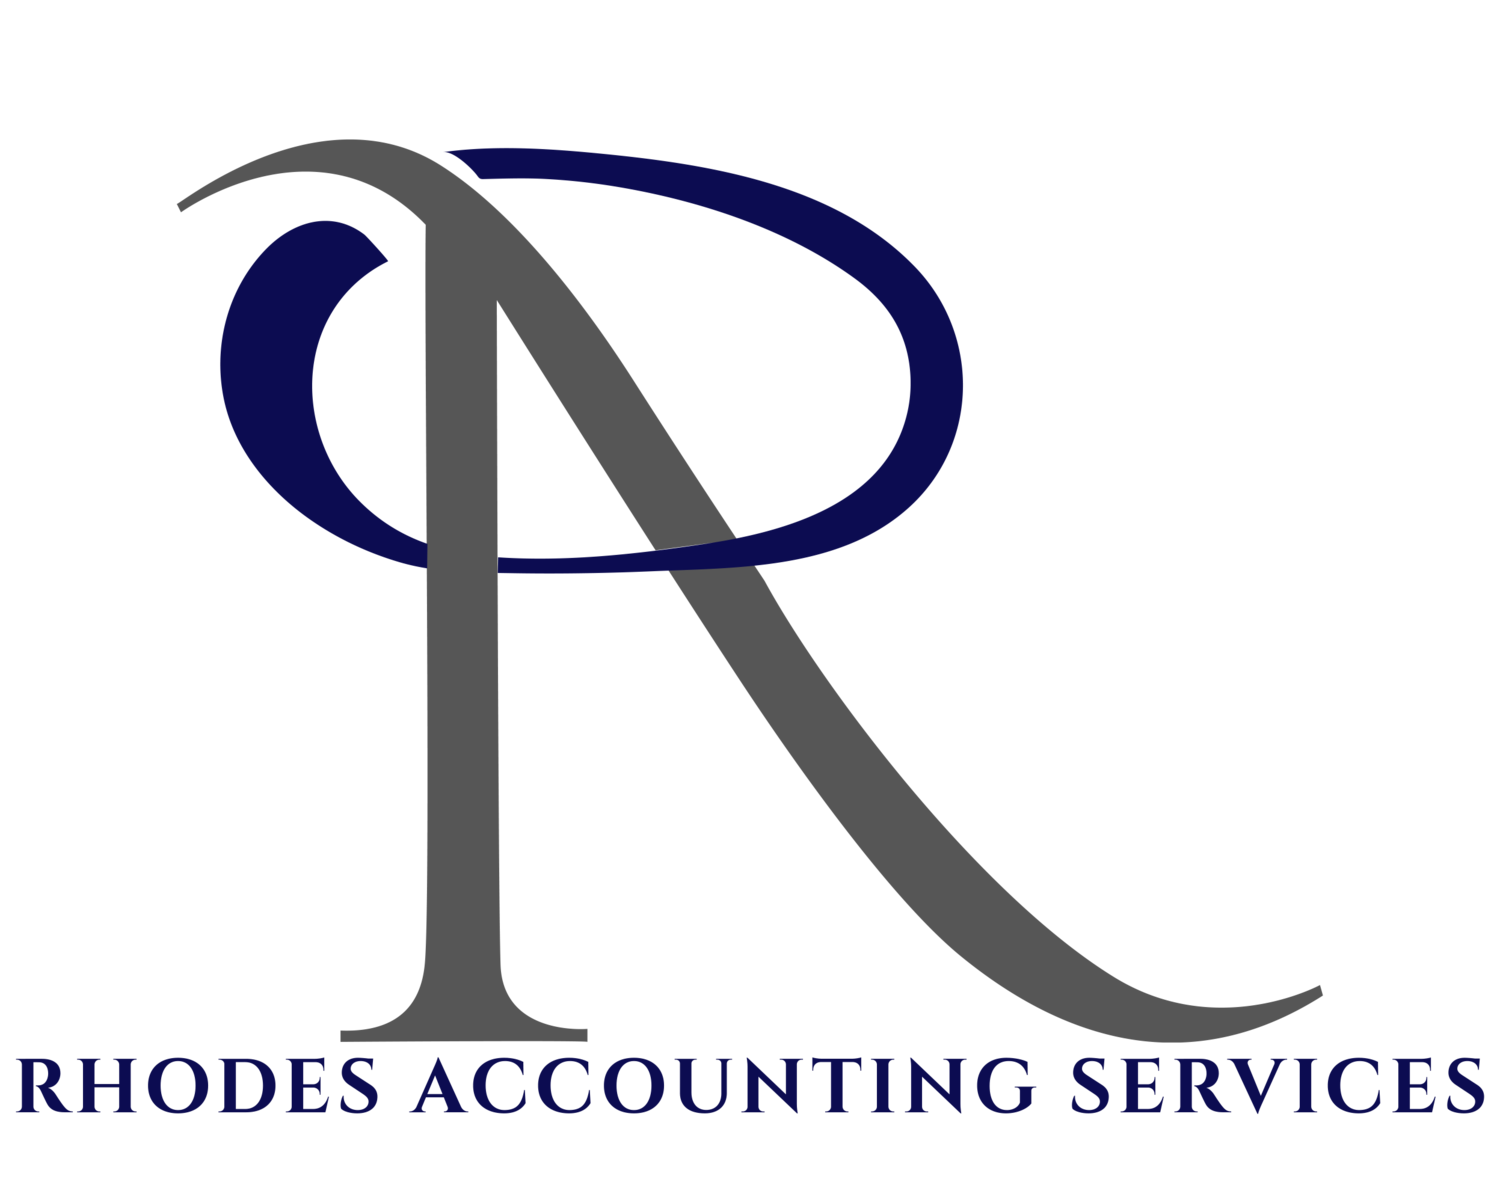 Rhodes Accounting Services